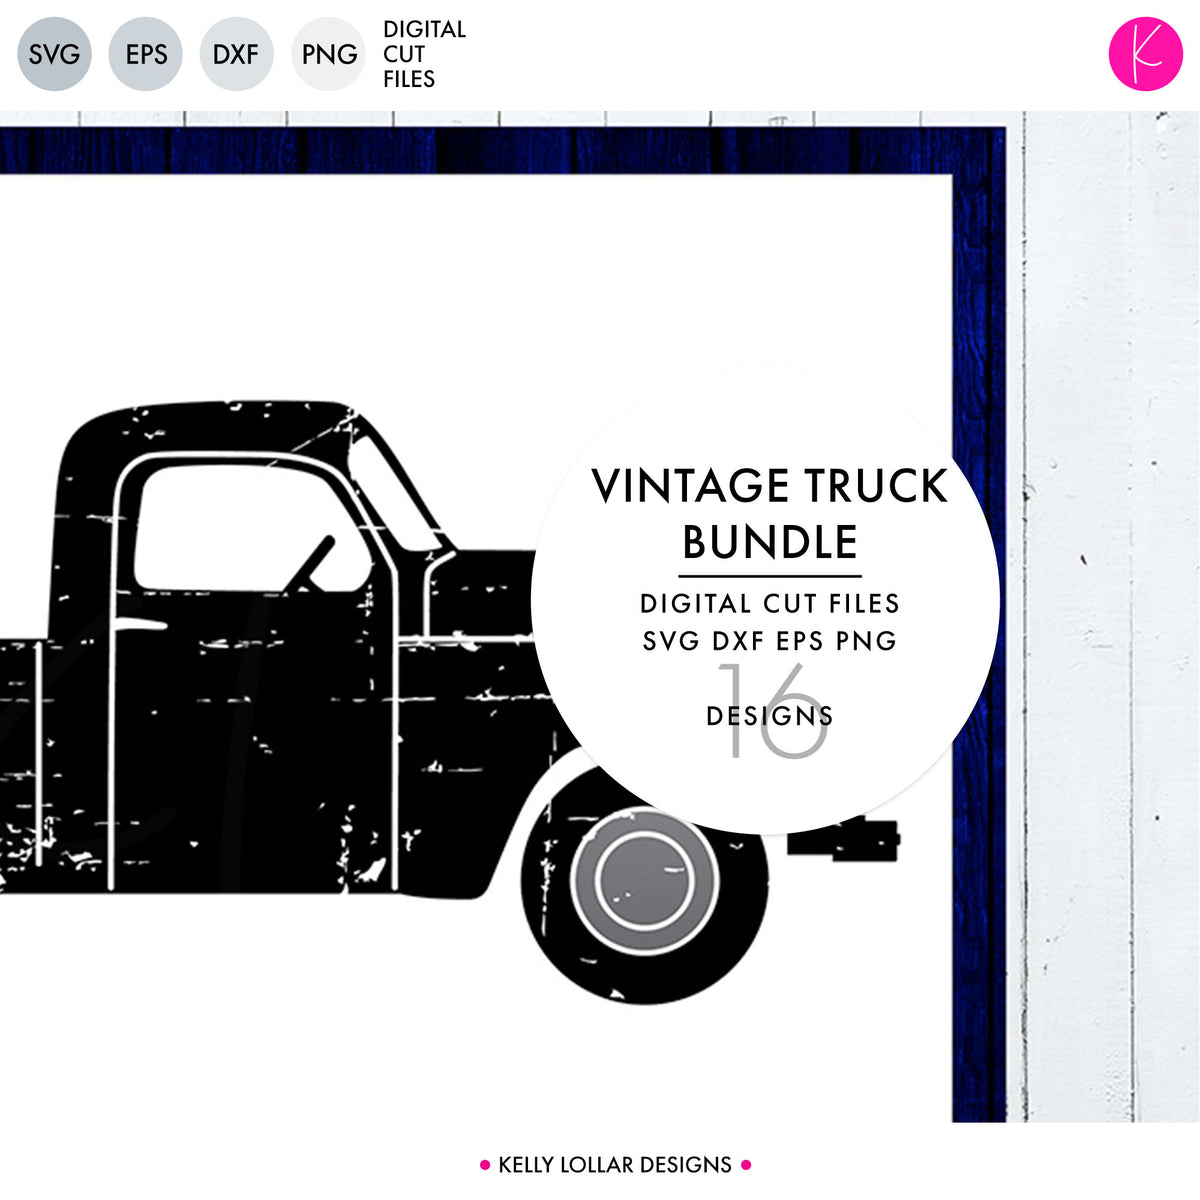 Vintage Truck | SVG DXF EPS PNG Cut Files